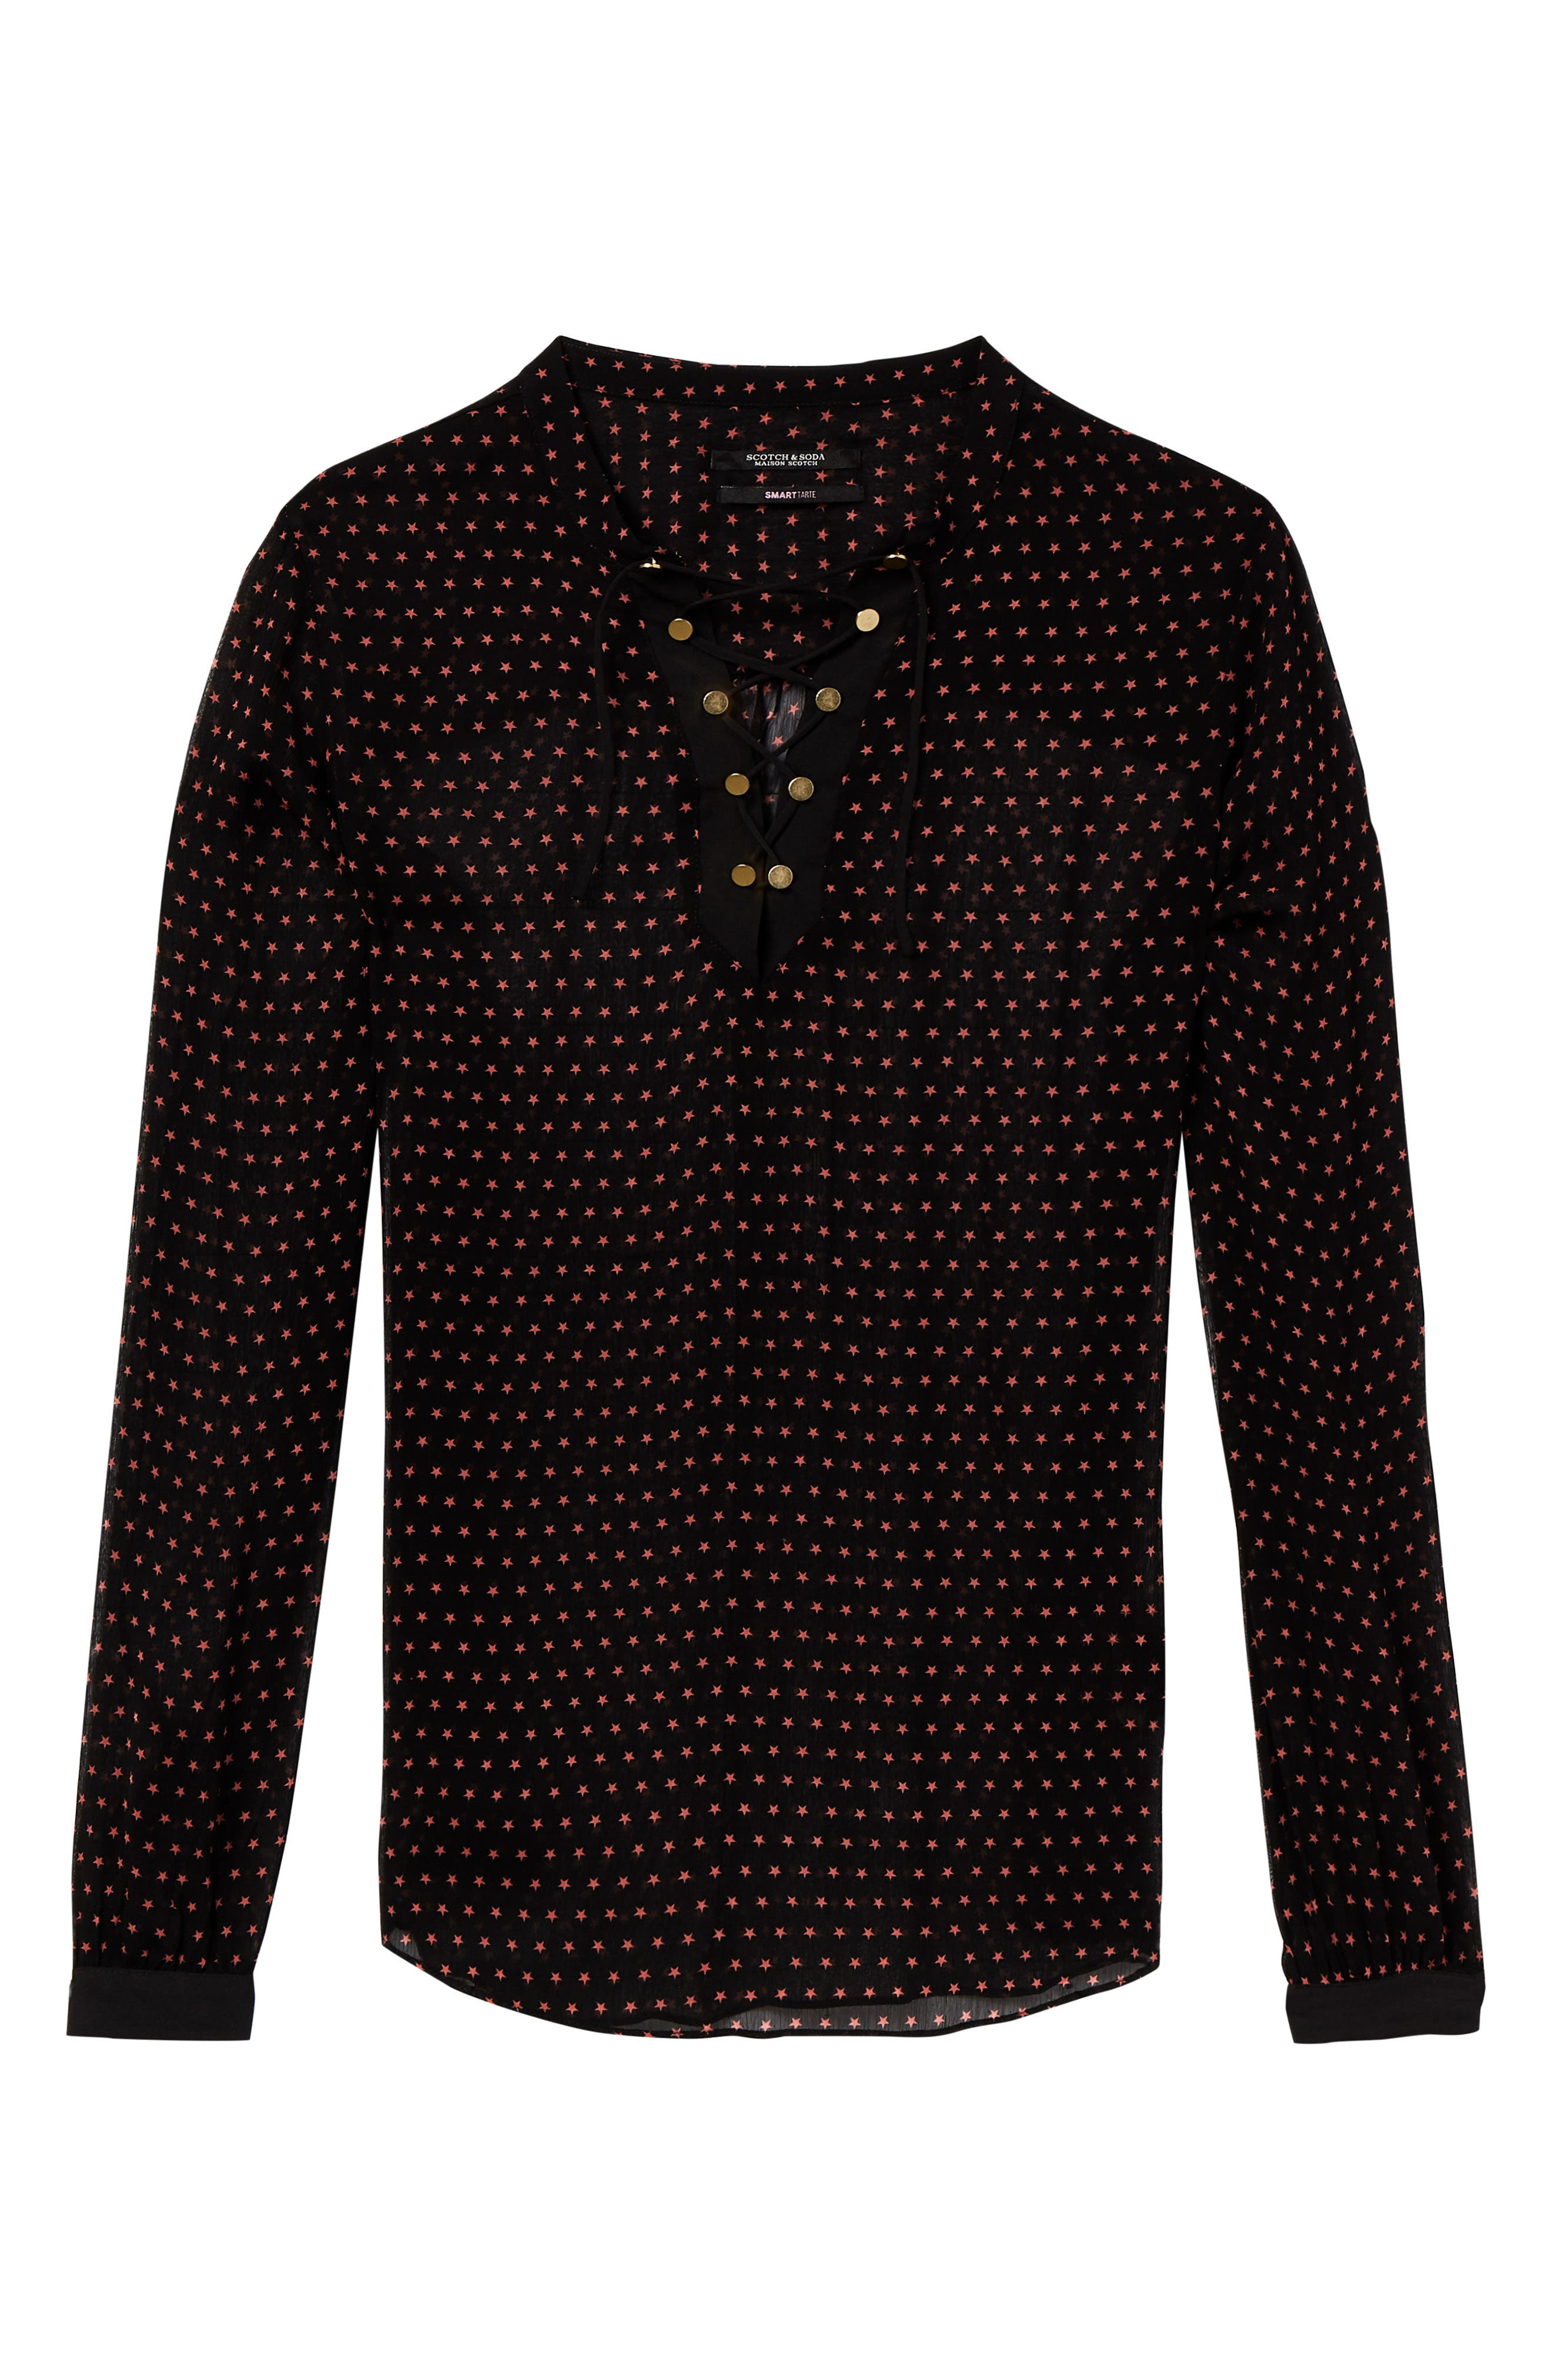 Lace-Up Star Print Blouse,                             Alternate thumbnail 4, color,                             BLACK W/ SMALL STAR